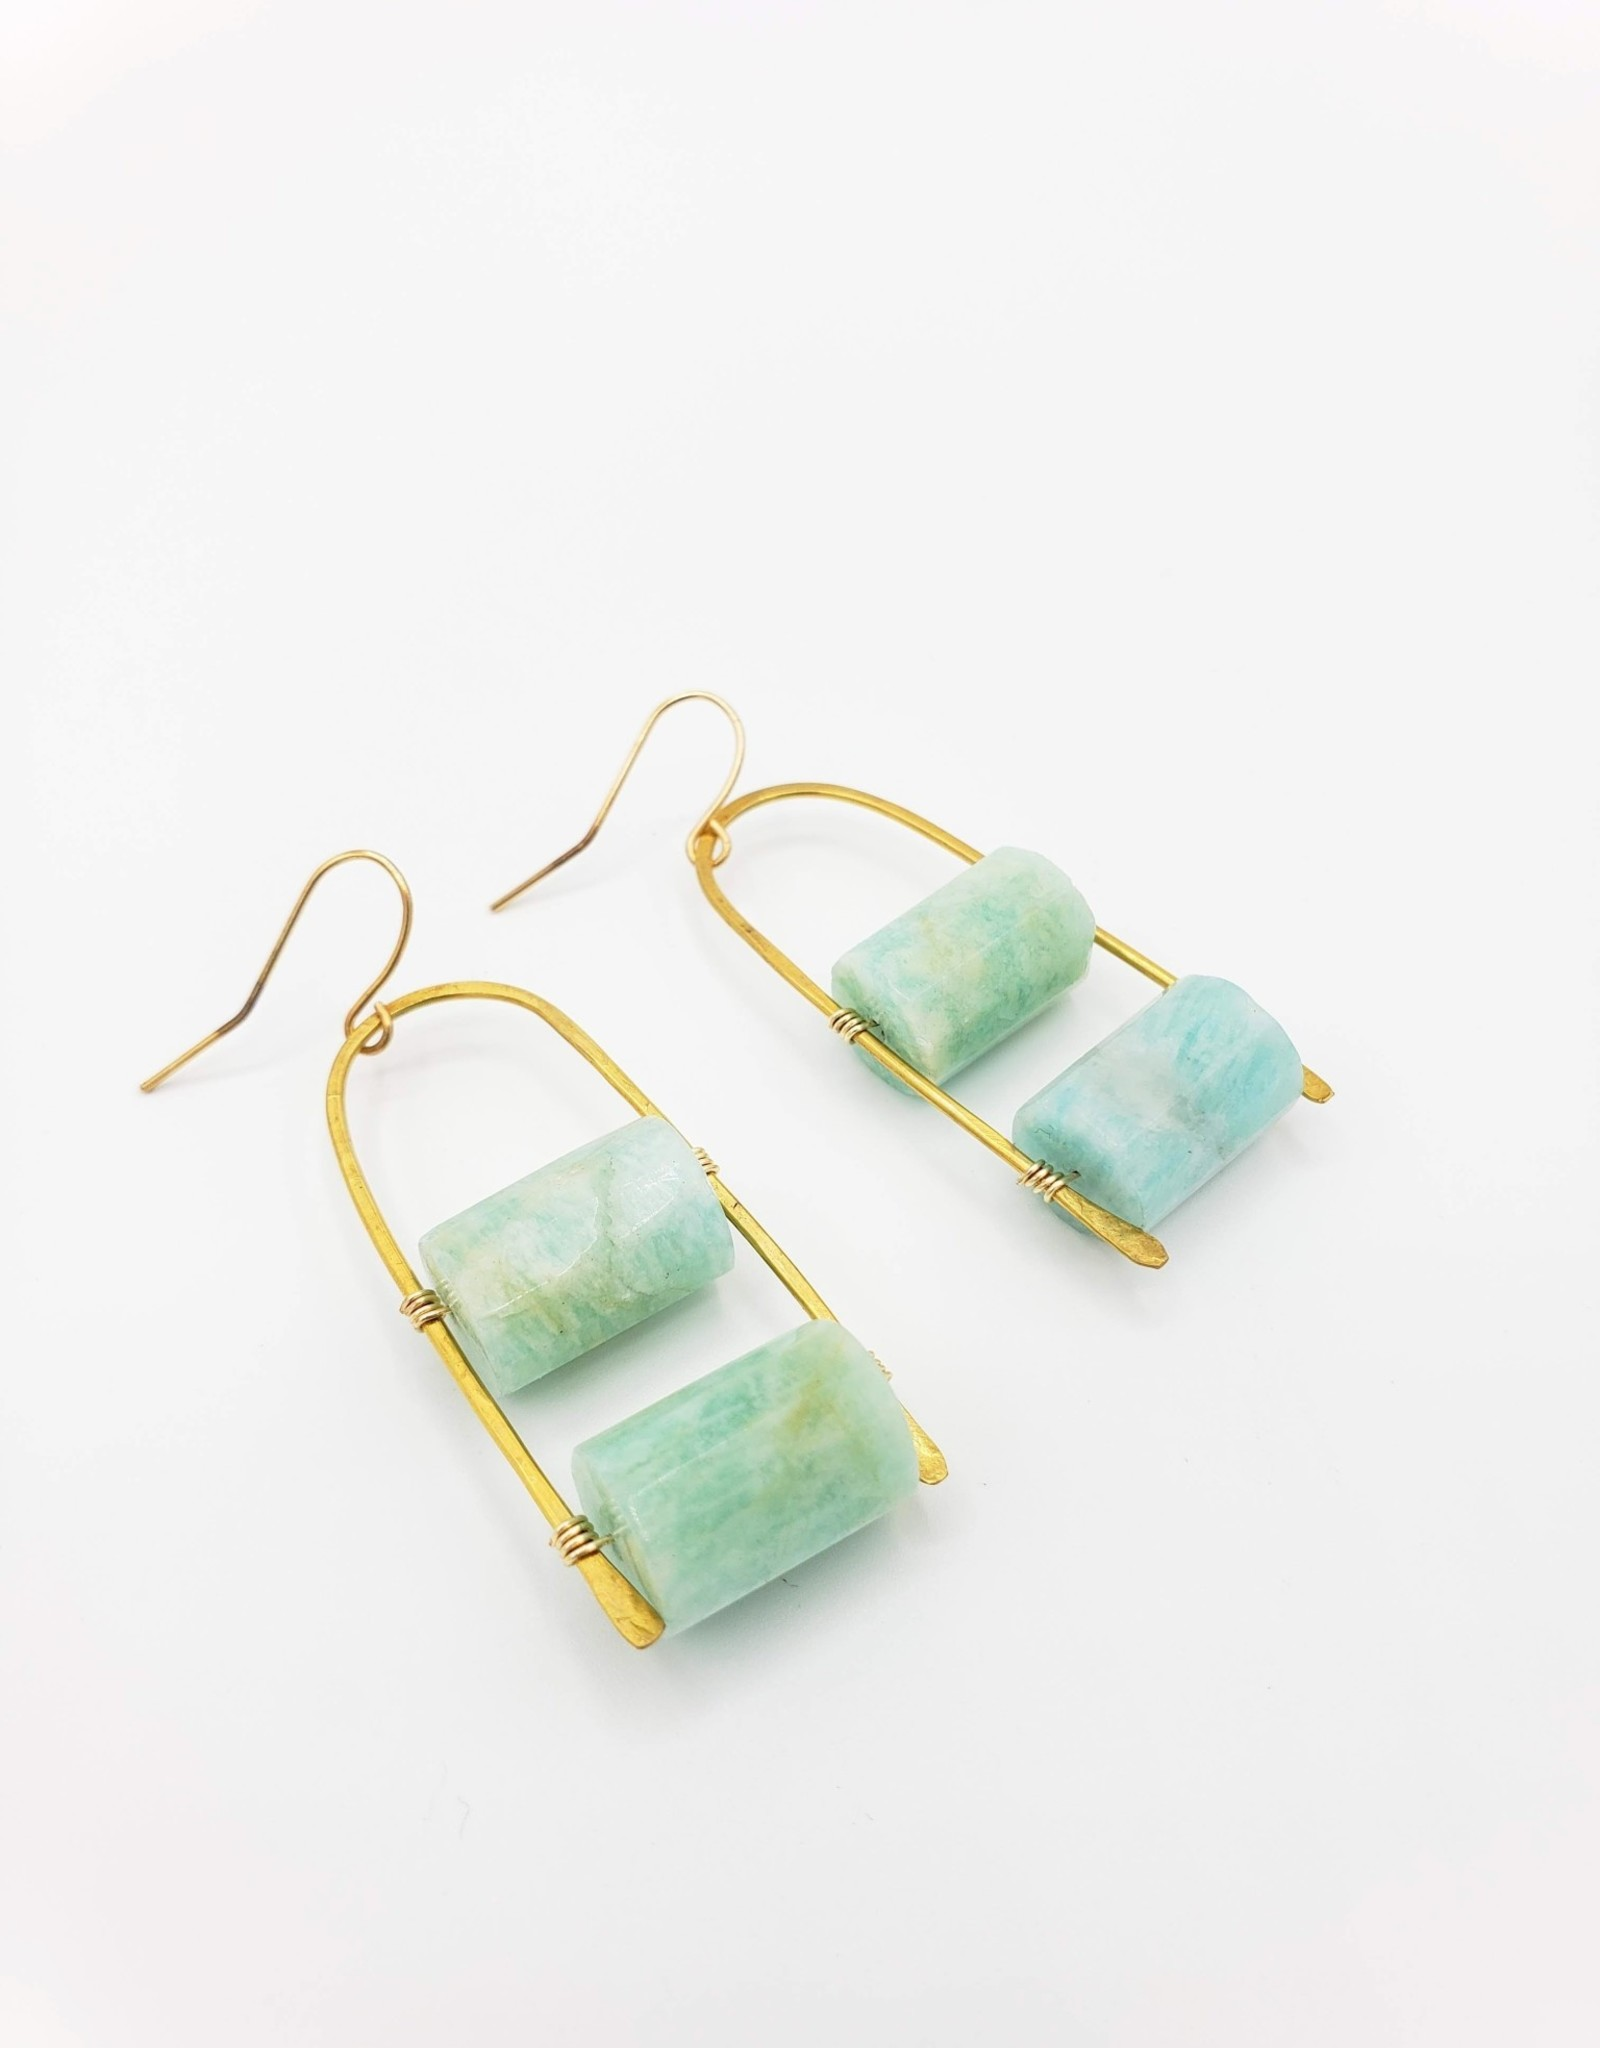 Kirsten Elise Jewelry Brass Arc Earrings with Amazonite